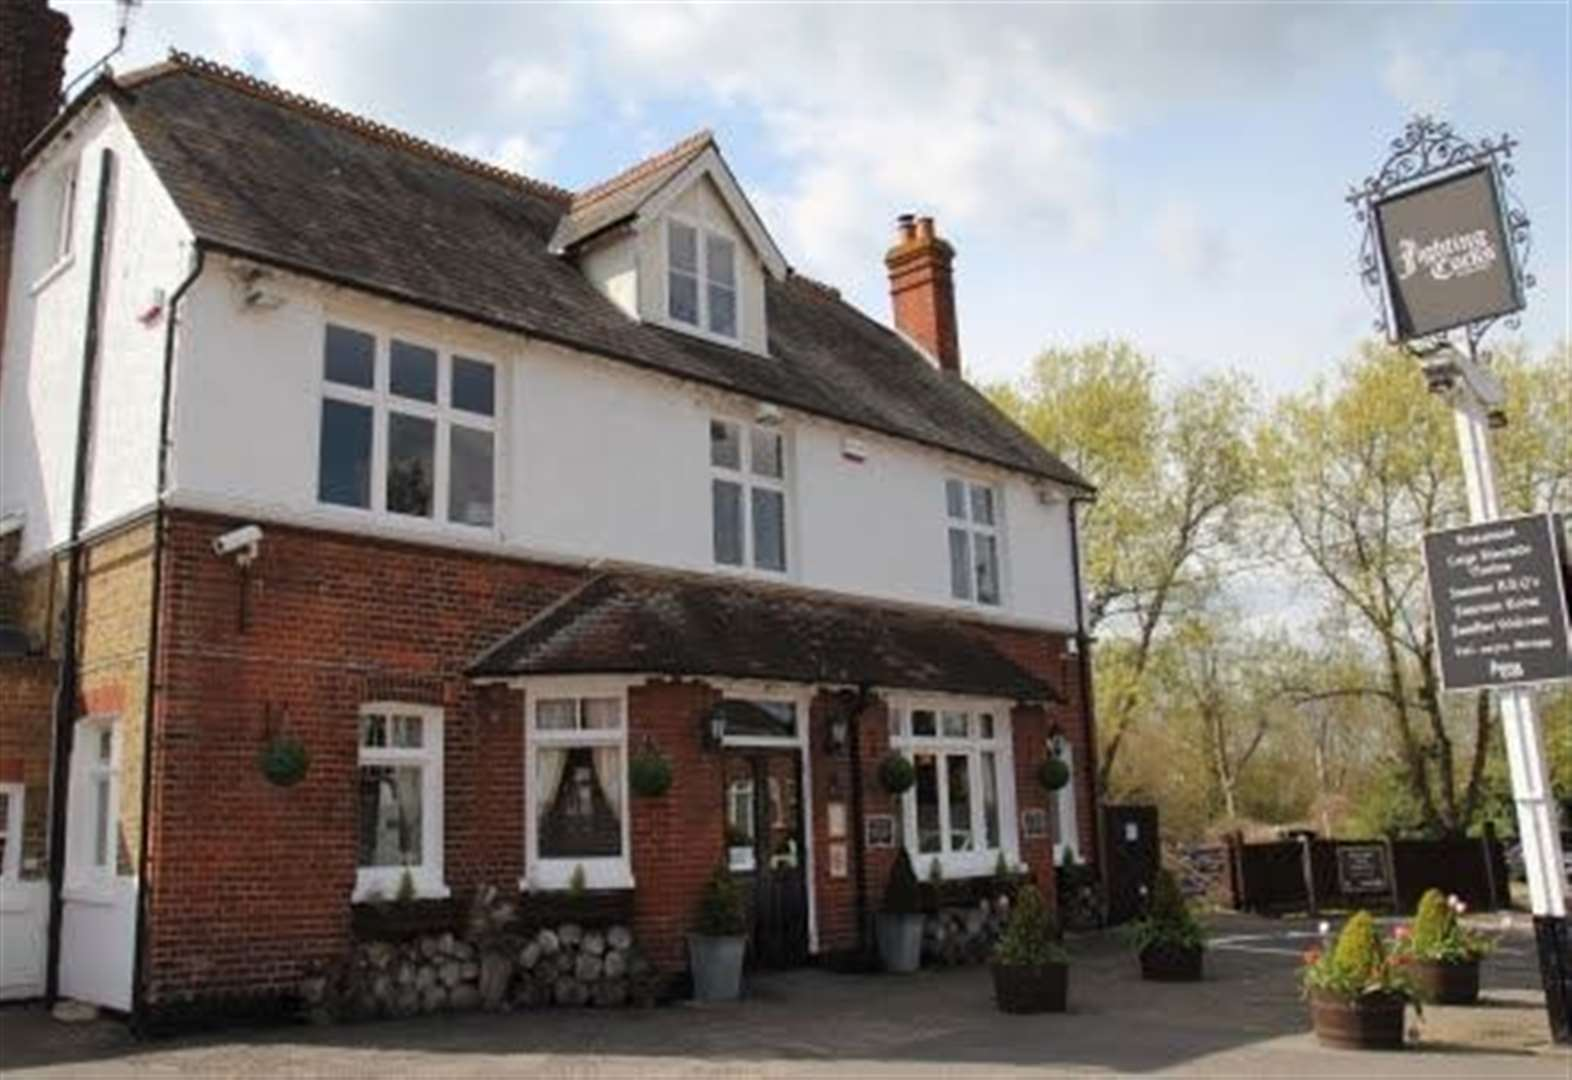 Pub welcomes new owners